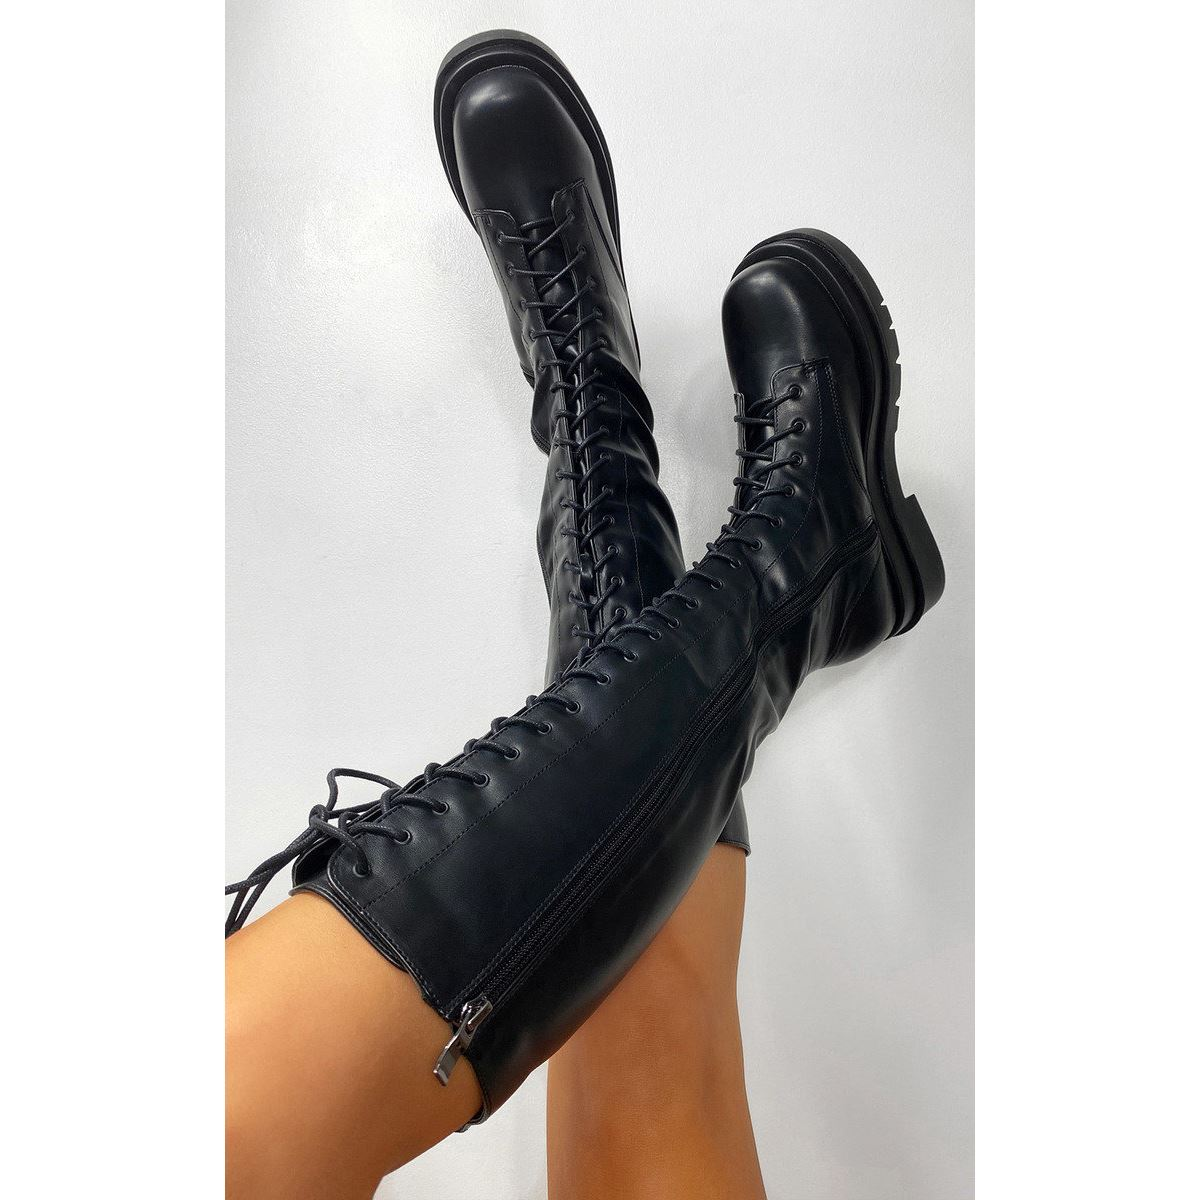 thumbnail 3 - Womens-Ladies-Lace-Up-Knee-Boots-Calf-High-Shoe-Grunge-Chunky-Sole-Size-Zip-New